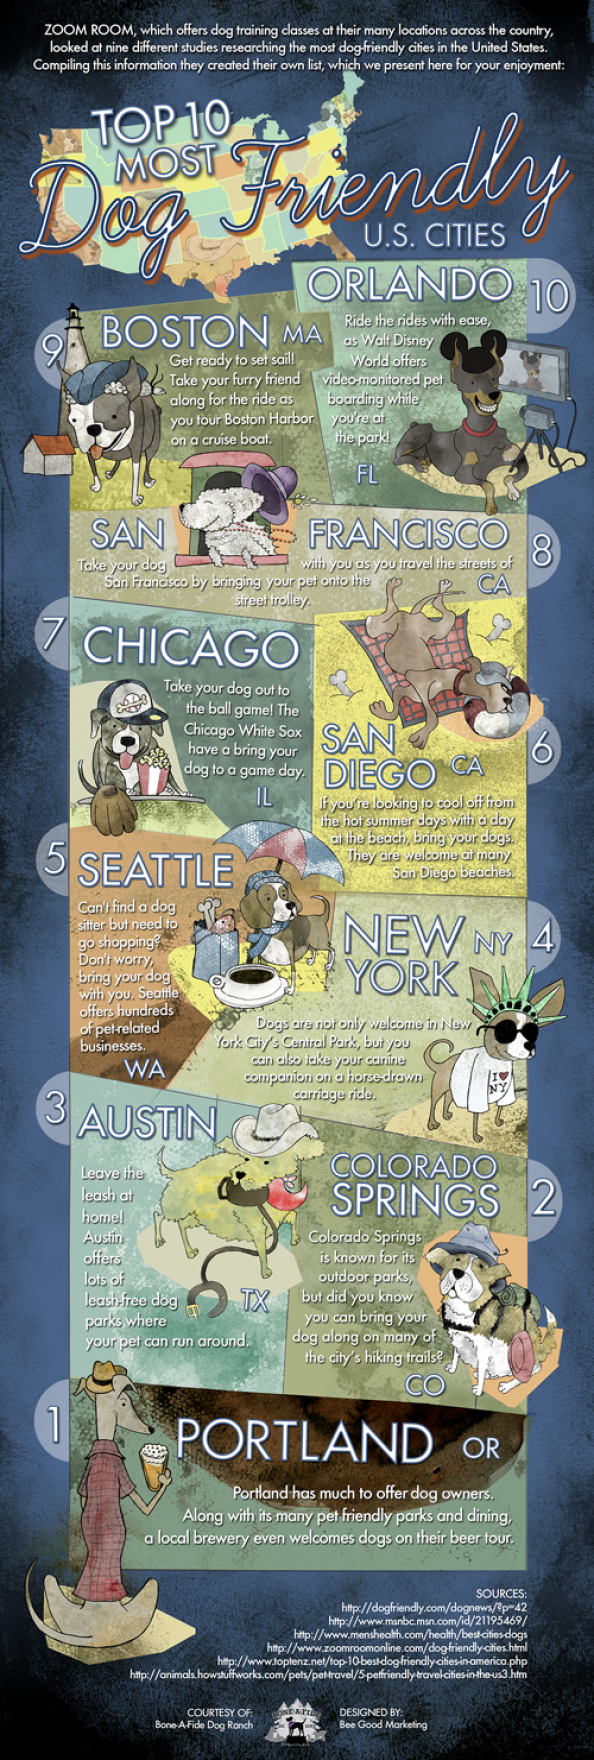 Top 10 Most Dog Friendly U.S. Cities Infographic